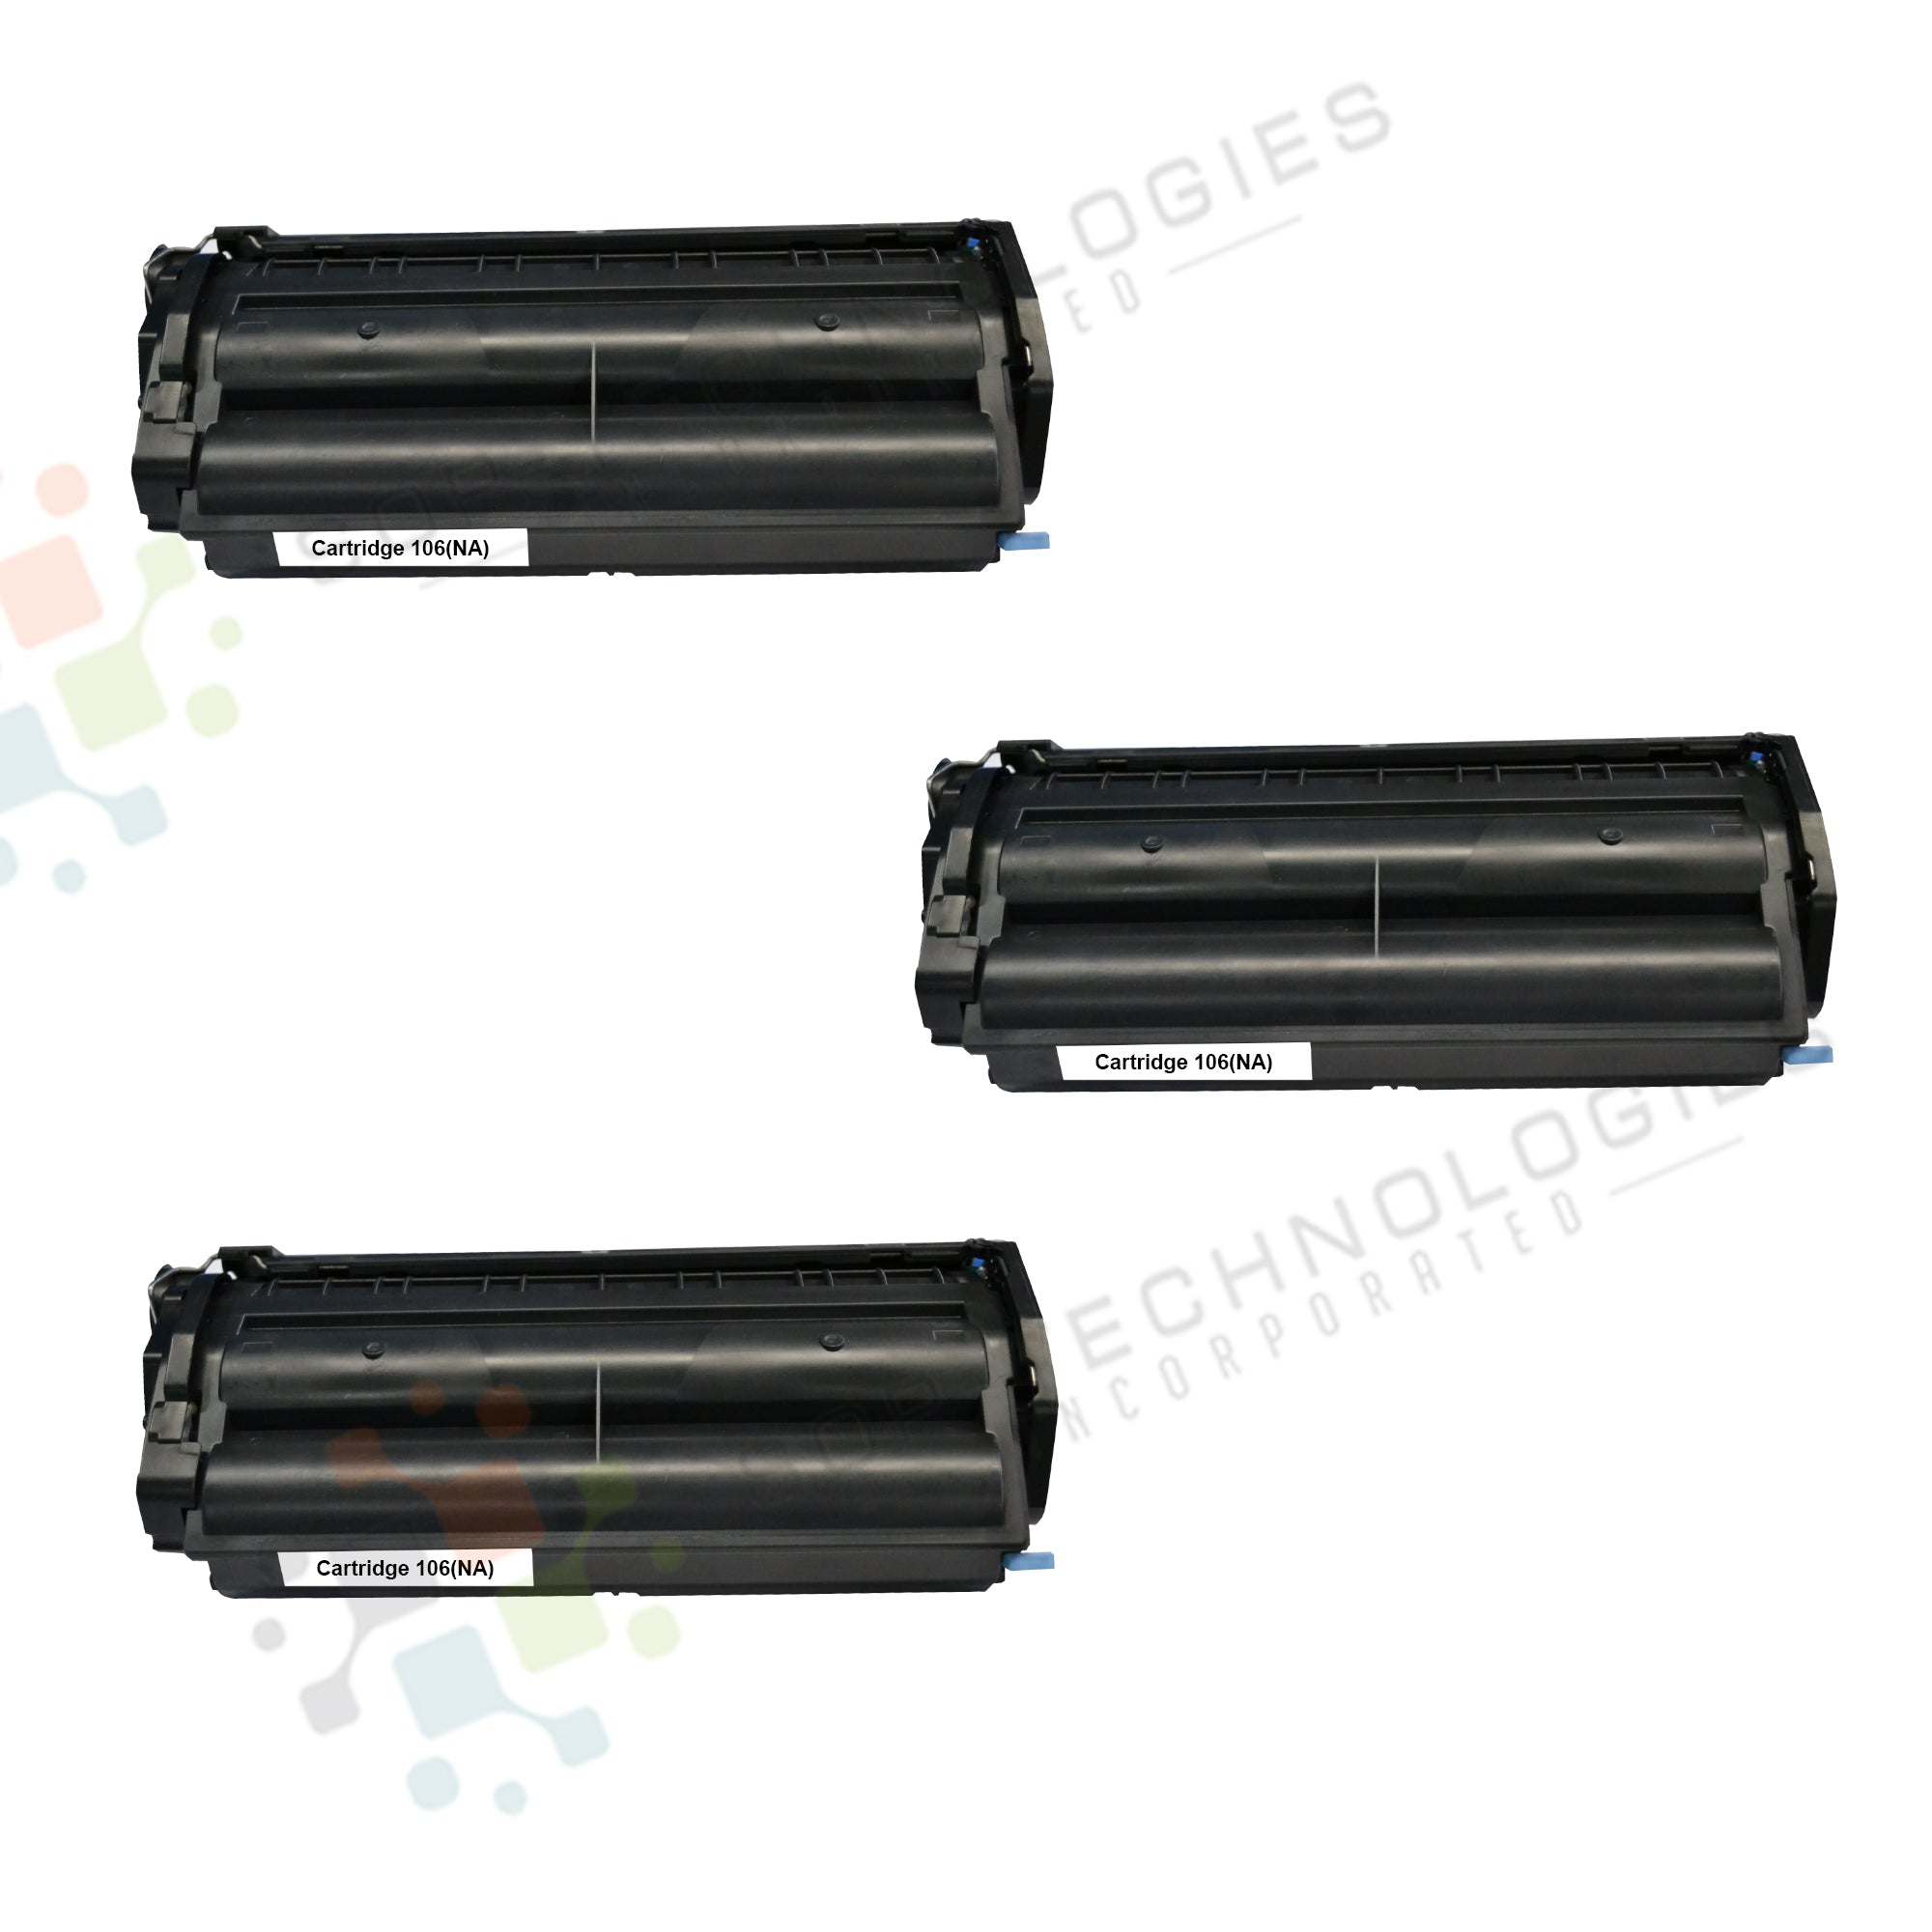 3pk Canon Toner for Canon MF6530 - SOP-TECHNOLOGIES, INC.